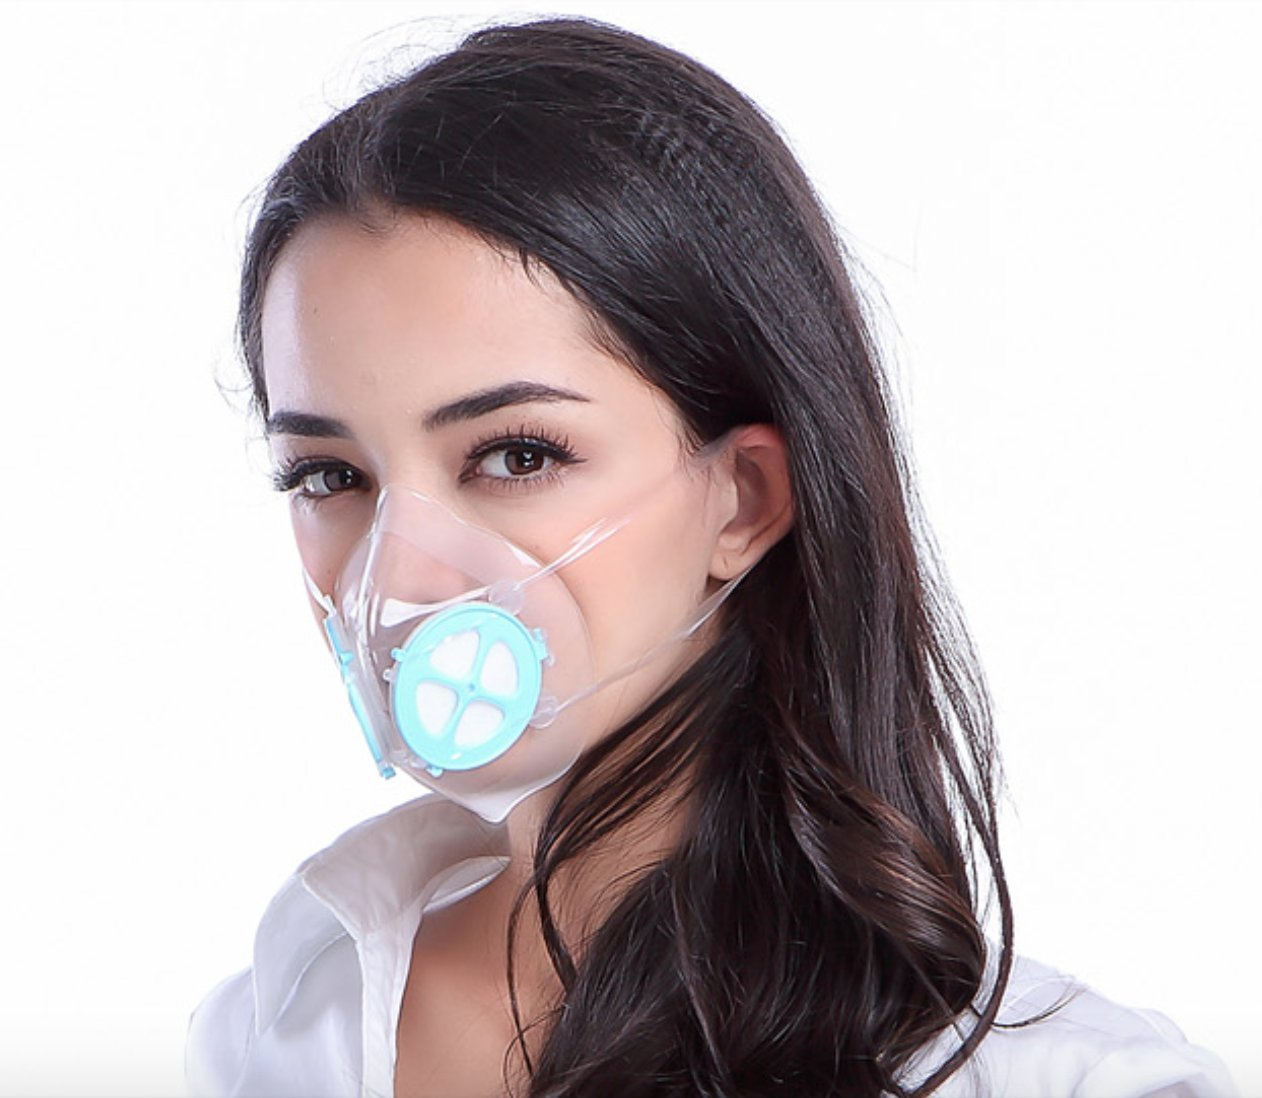 Totobobo Petite Anti Pollution Mask/Washable and Reusable Respirator/Air Pollution/Allergies / Viruses/Bacteria / Dust/Cycling / Motorcycle/Running / Travel / Dream Lab Ltd